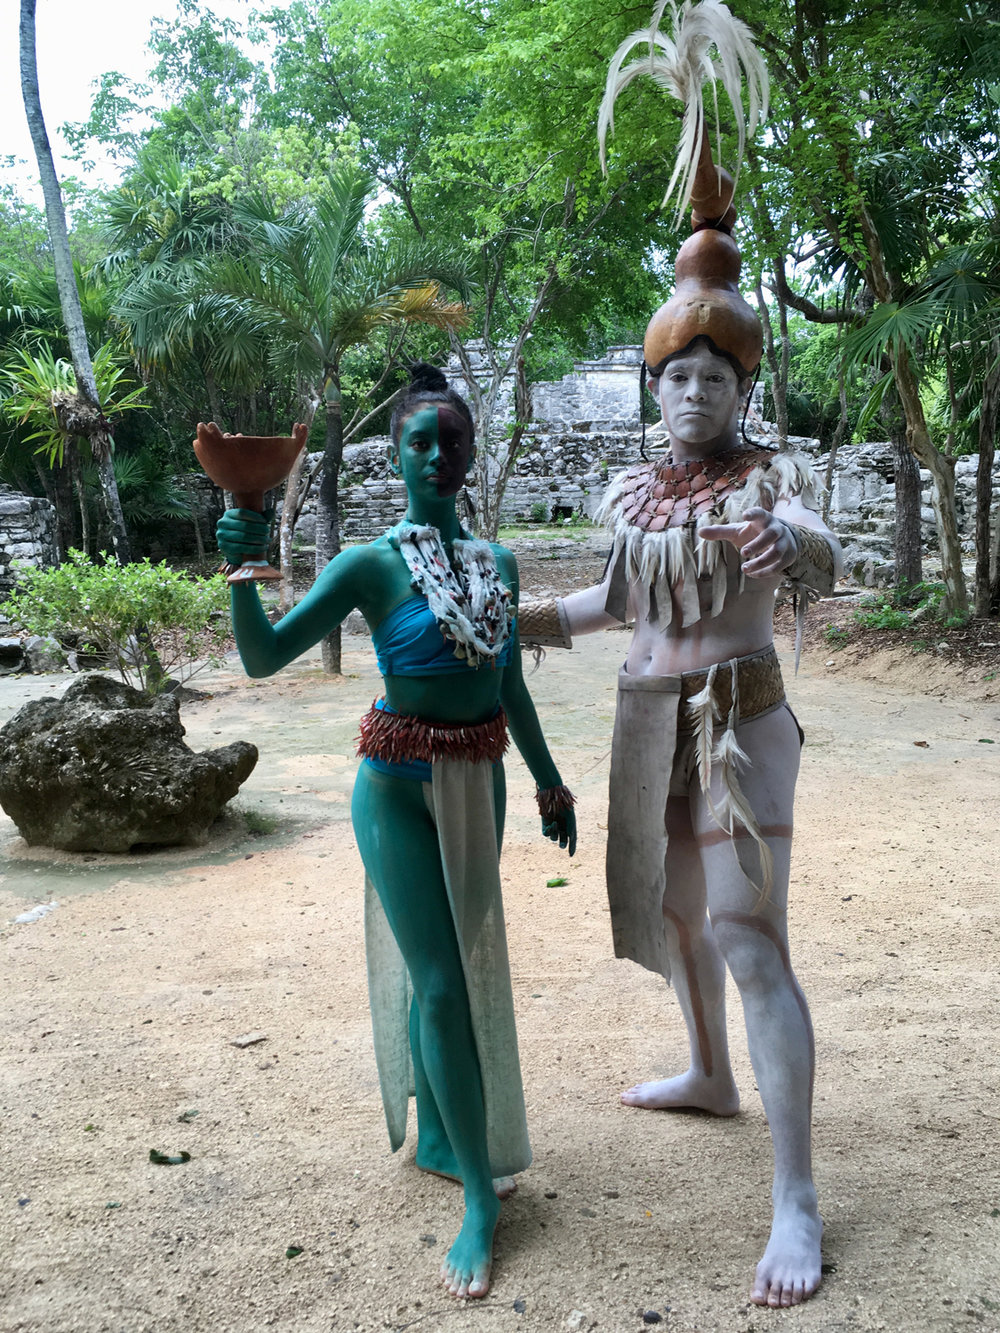 Priestess and priest outside the ruins during the annual sacred journey from Xcaret to Cozumel.